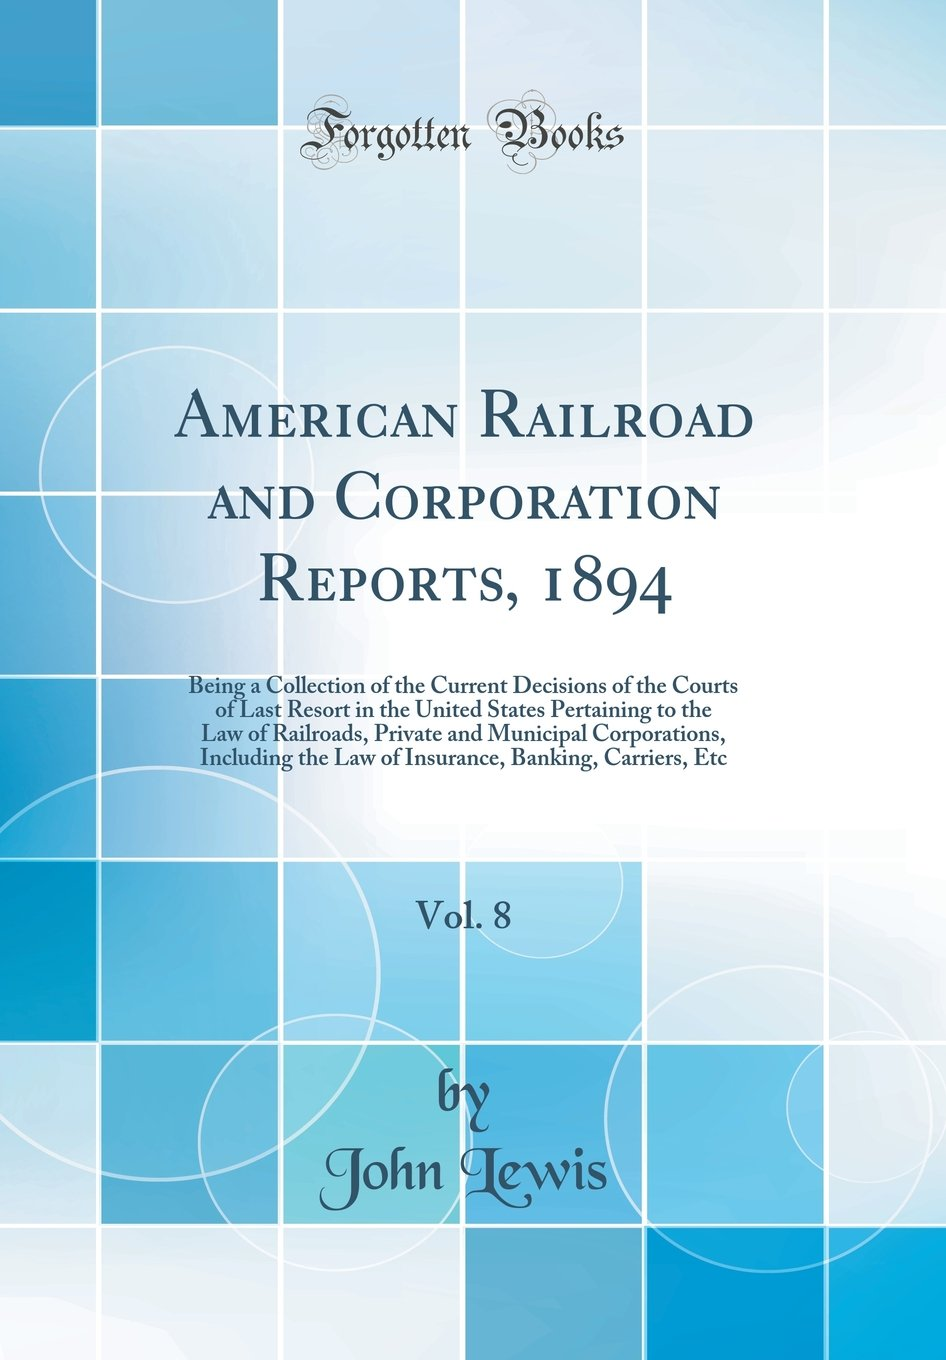 Download American Railroad and Corporation Reports, 1894, Vol. 8: Being a Collection of the Current Decisions of the Courts of Last Resort in the United States ... Corporations, Including the Law of Insurance, pdf epub